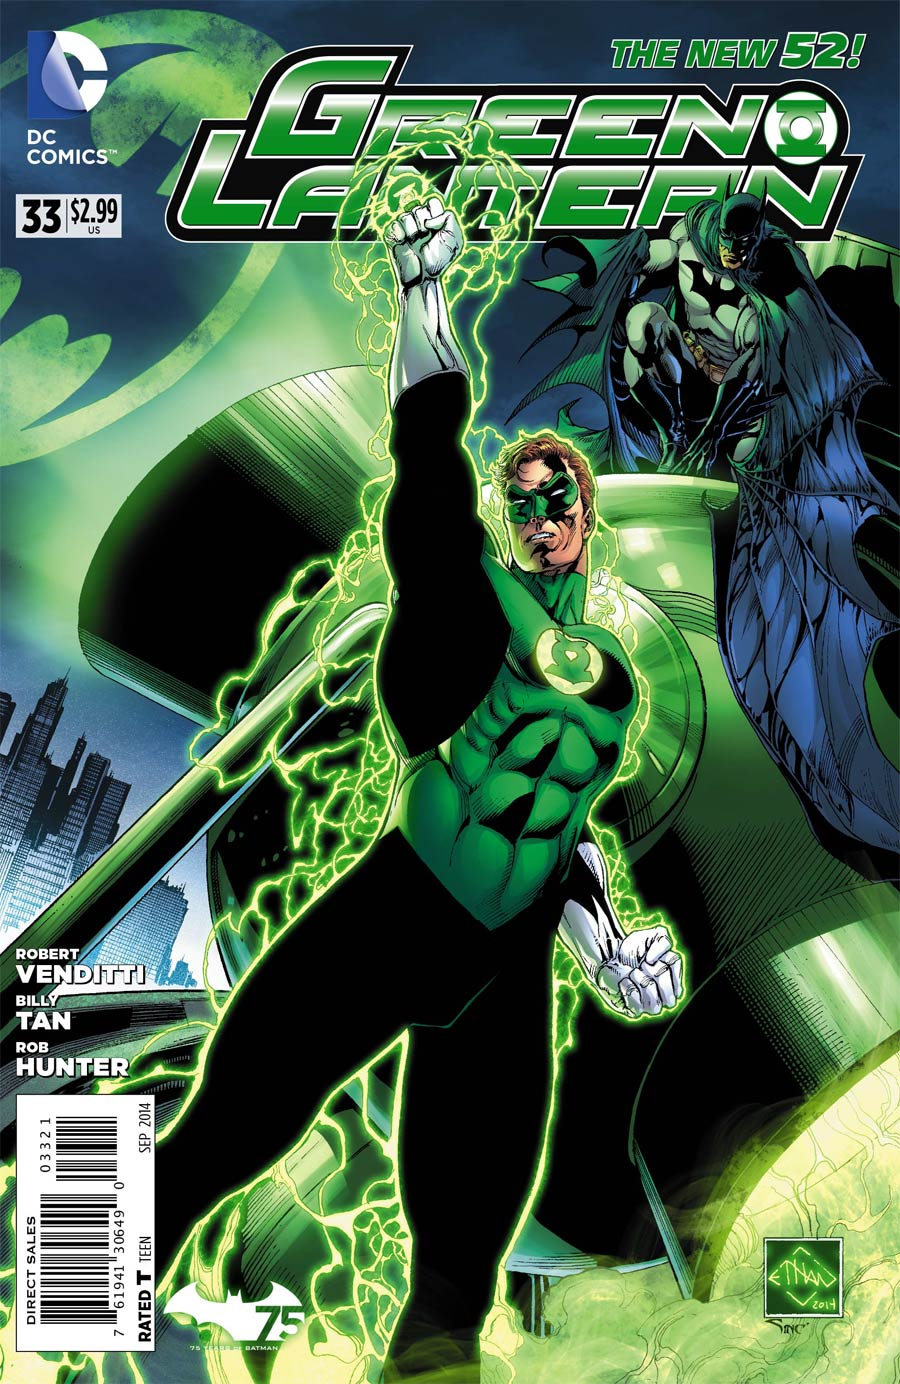 Green Lantern Vol 5 #33 Cover B Variant Ethan Van Sciver Batman 75th Anniversary Cover (Uprising Part 5)